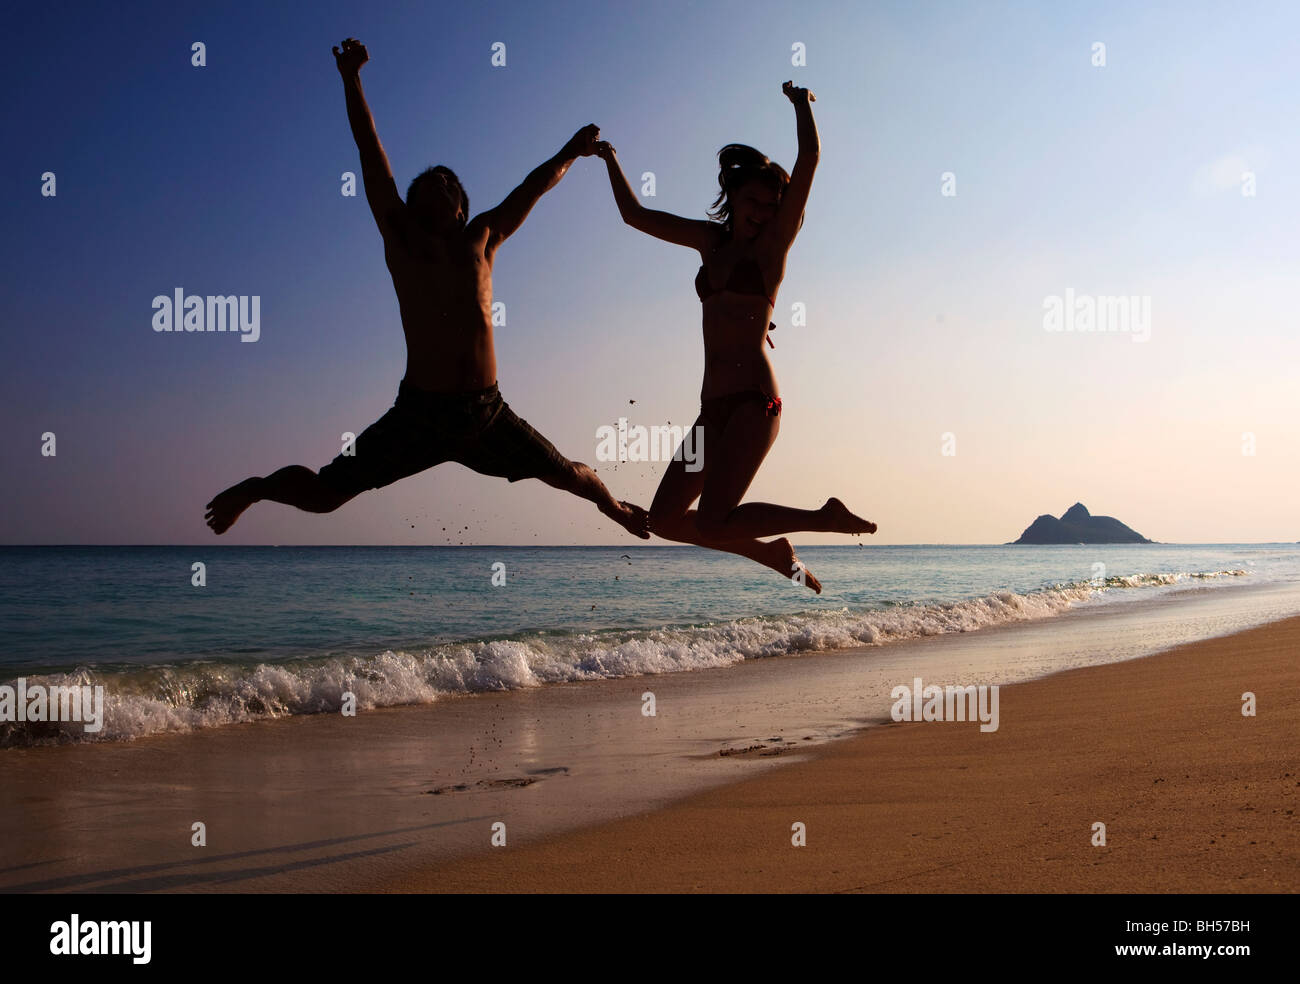 silhouette of couple jumping in the air at a hawaii beach - Stock Image